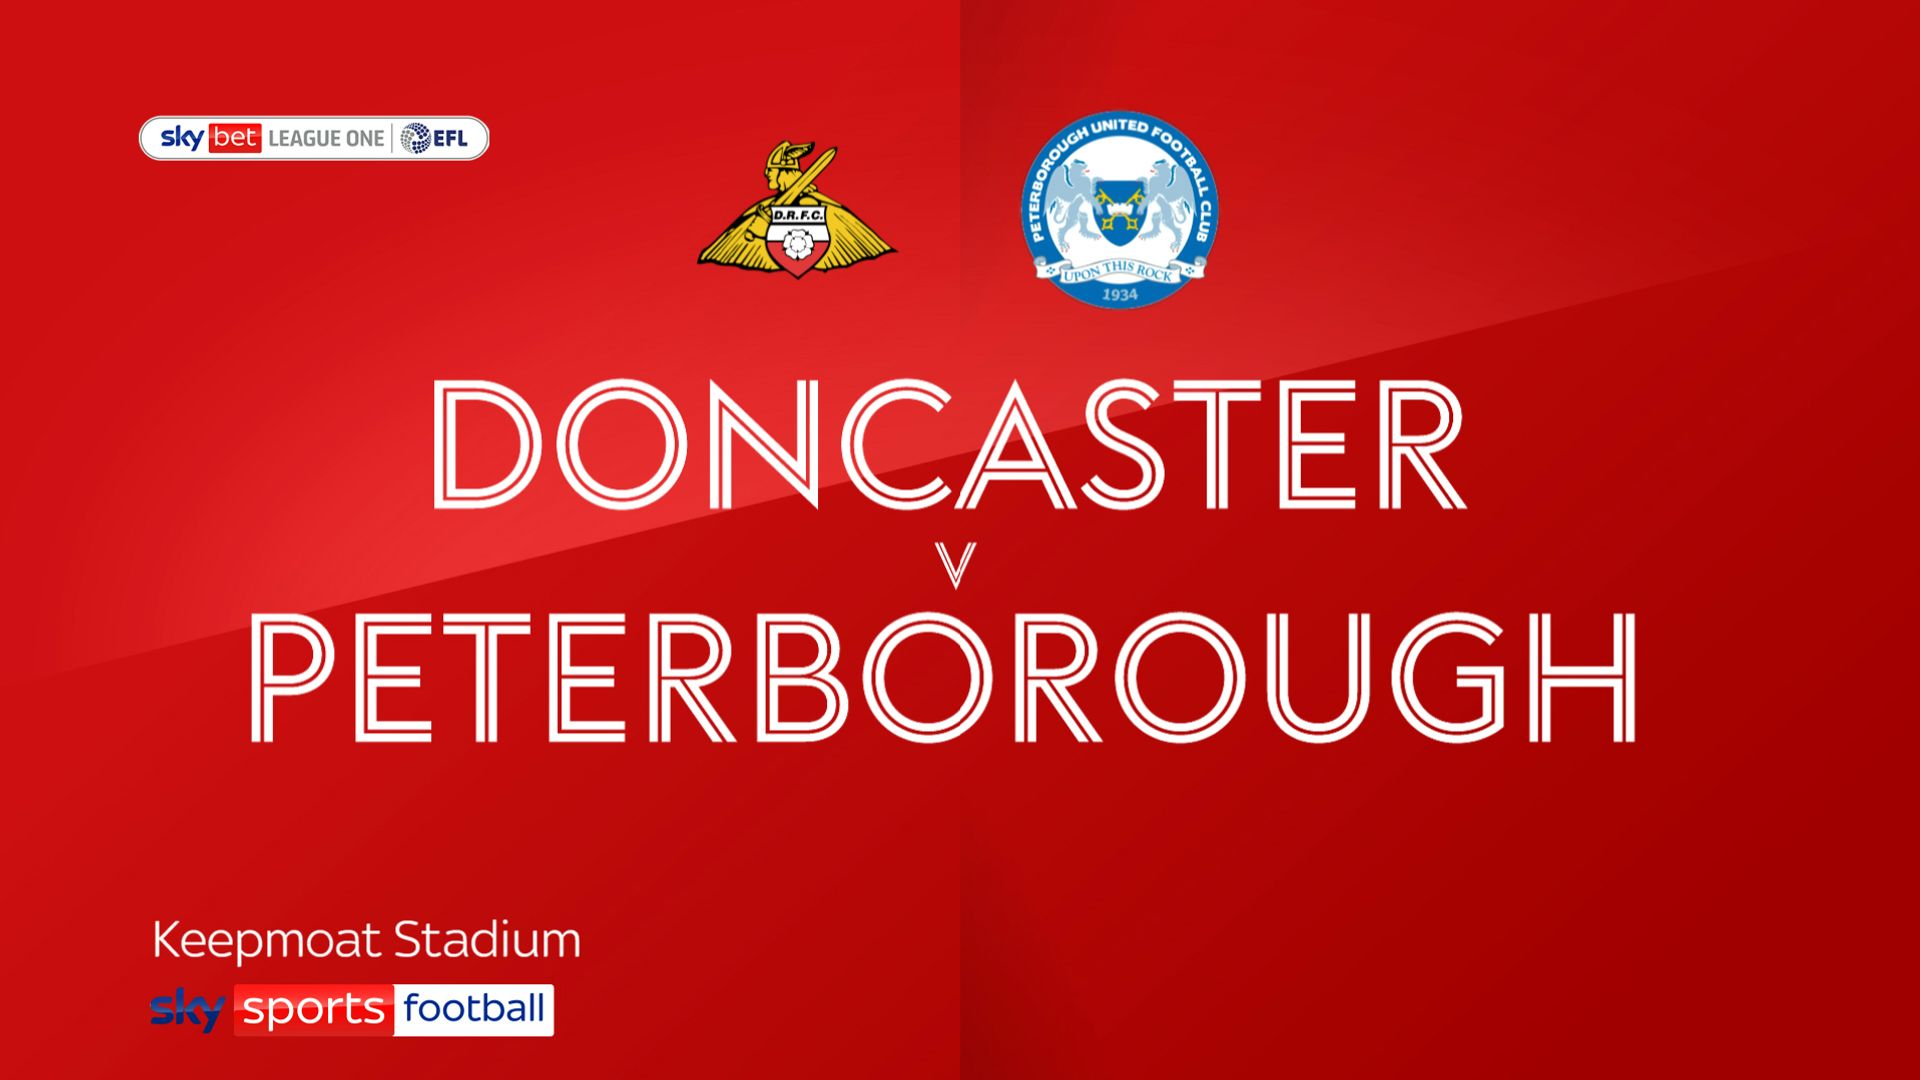 Doncaster thrashed in Coppinger's final game